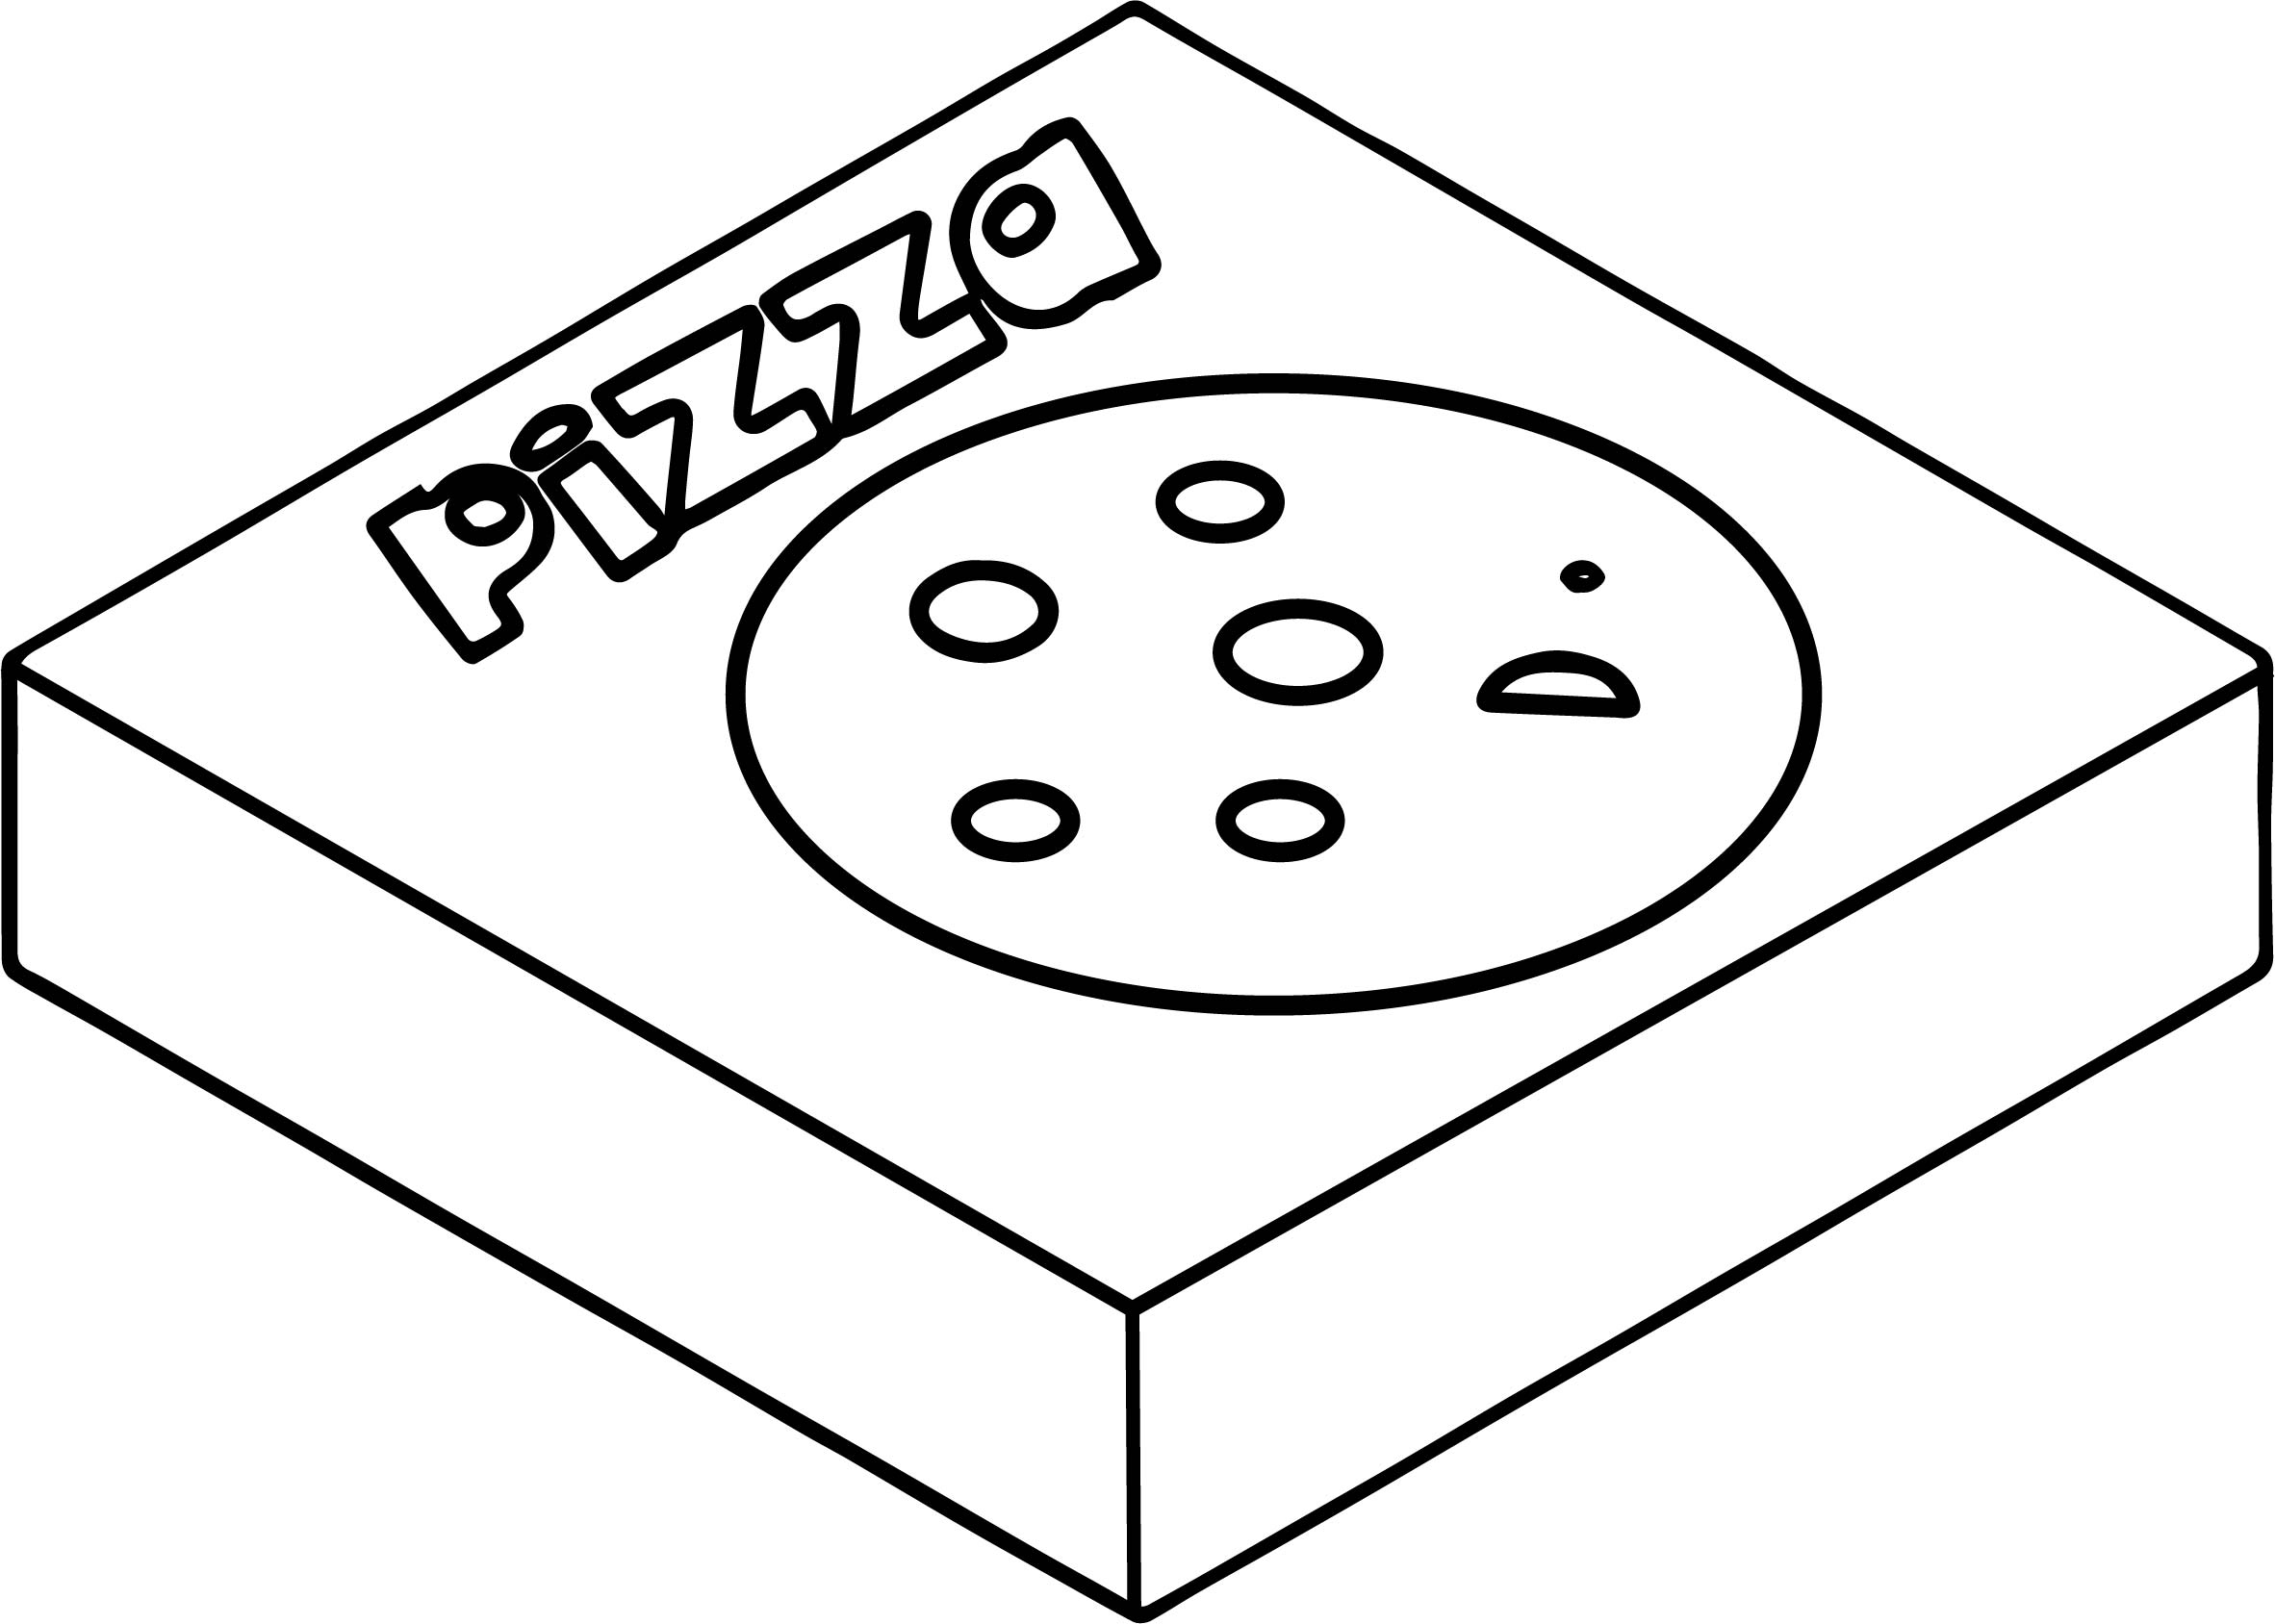 Illustration Of A Pizza Box Coloring Page Wecoloringpagecom